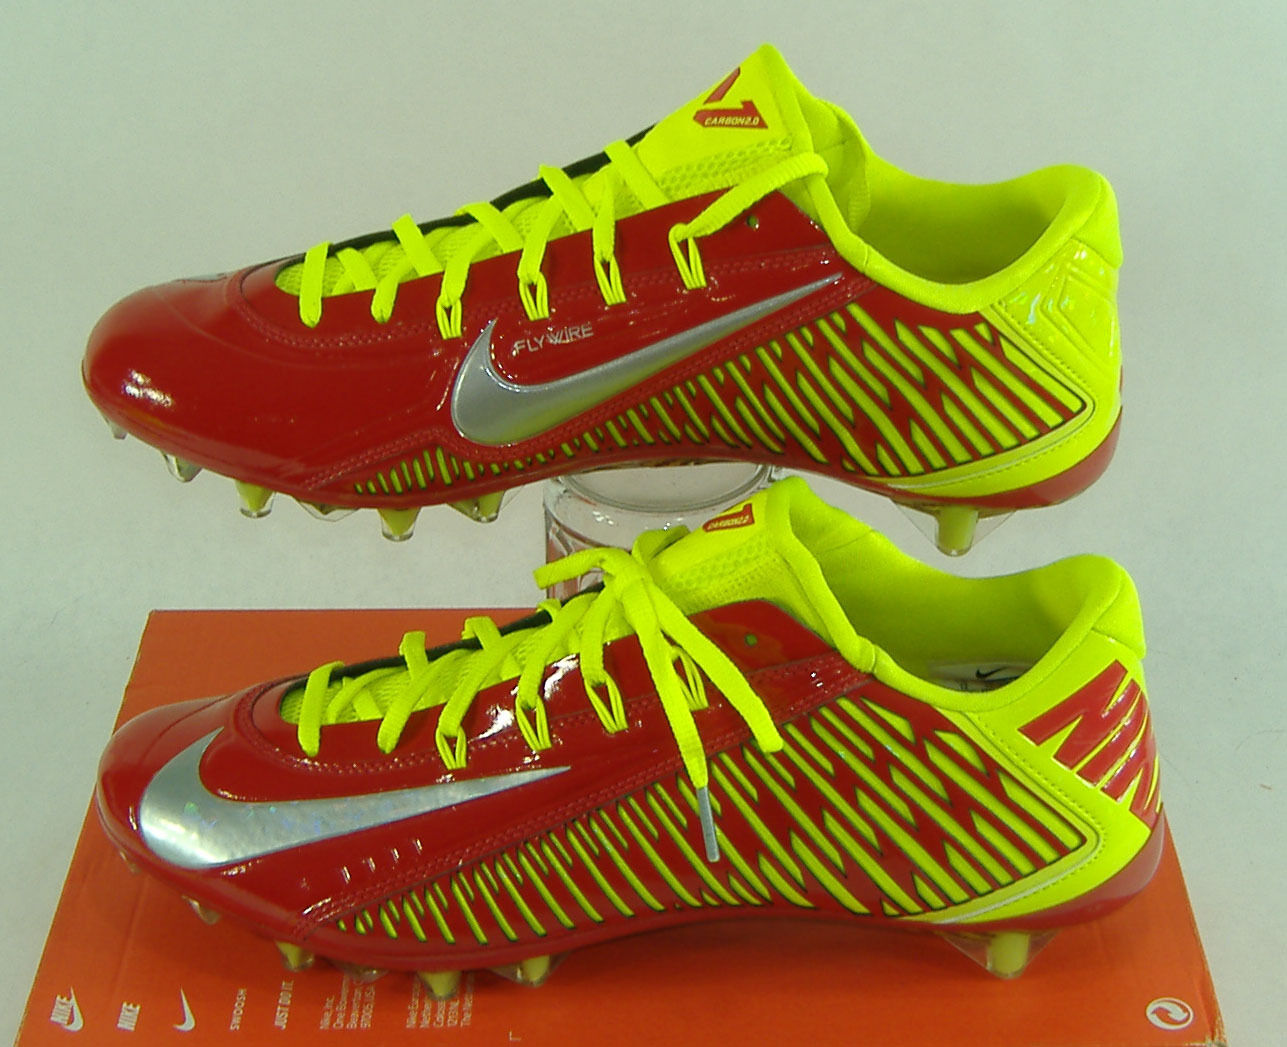 New Mens 13 NIKE Vapor Carbon ELT 2014 TD Red Volt Cleats Shoes    631425-607